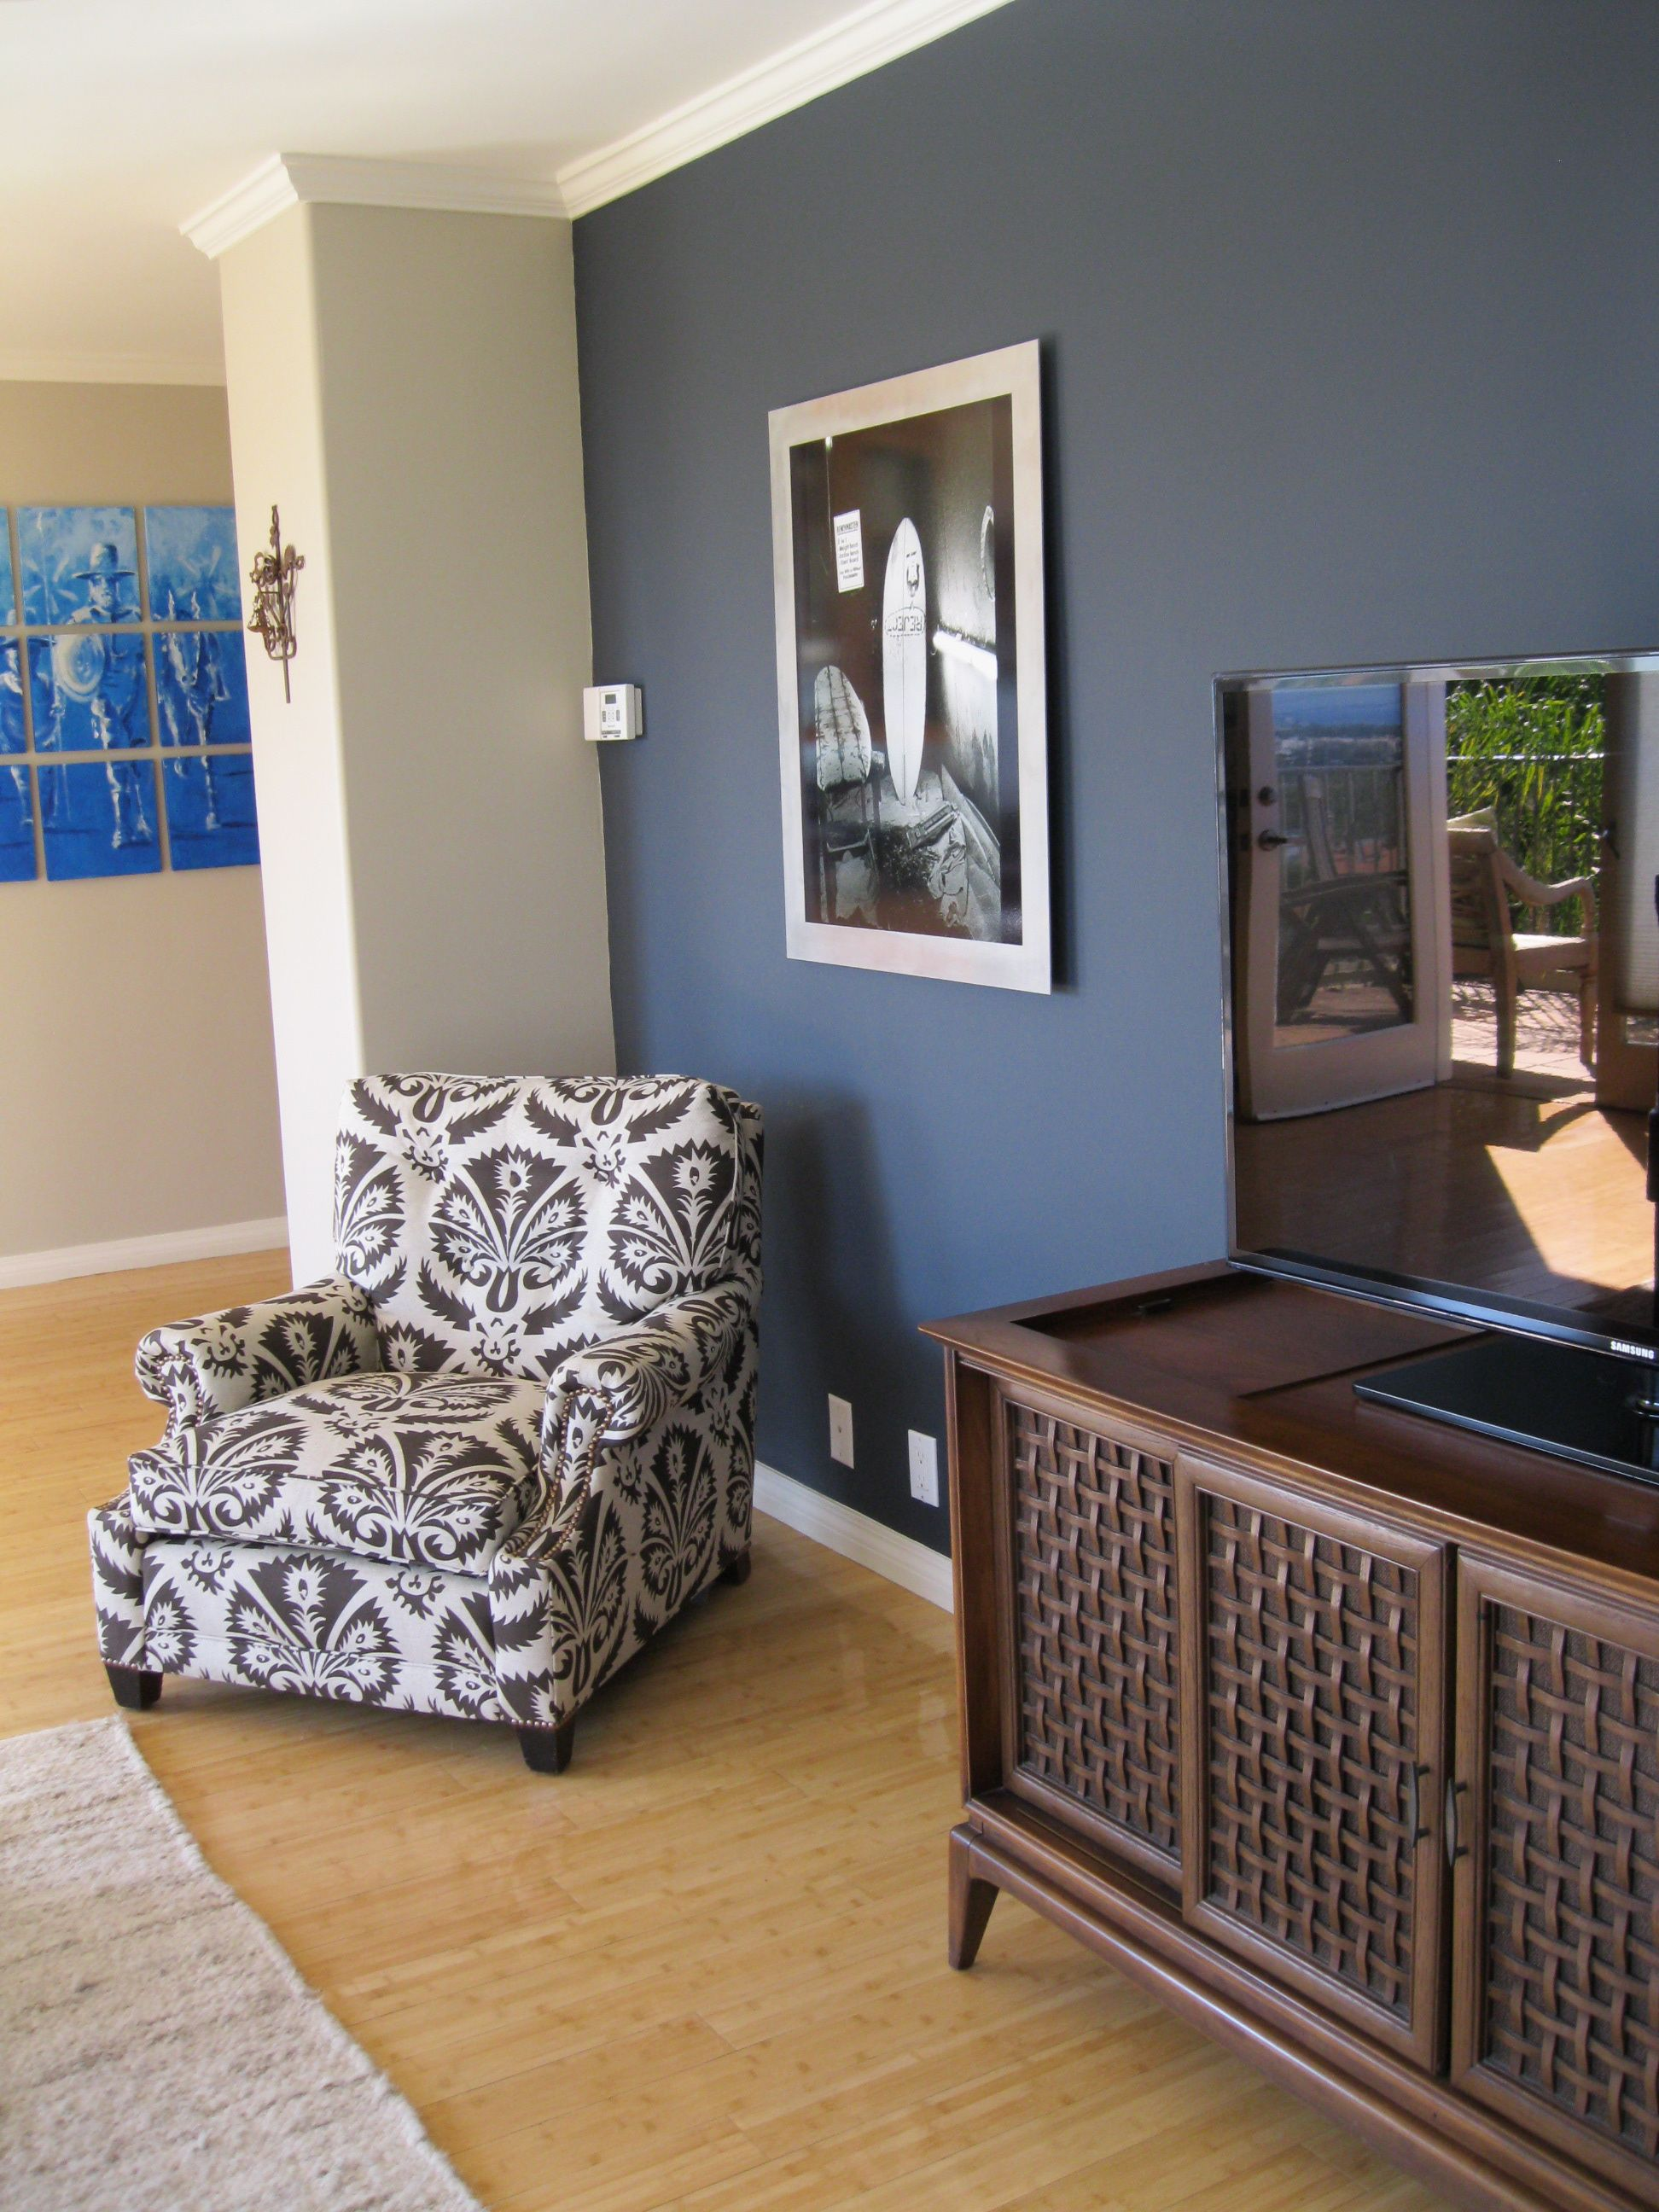 shade of blue on wall camoflauges tv love the chair too. Black Bedroom Furniture Sets. Home Design Ideas